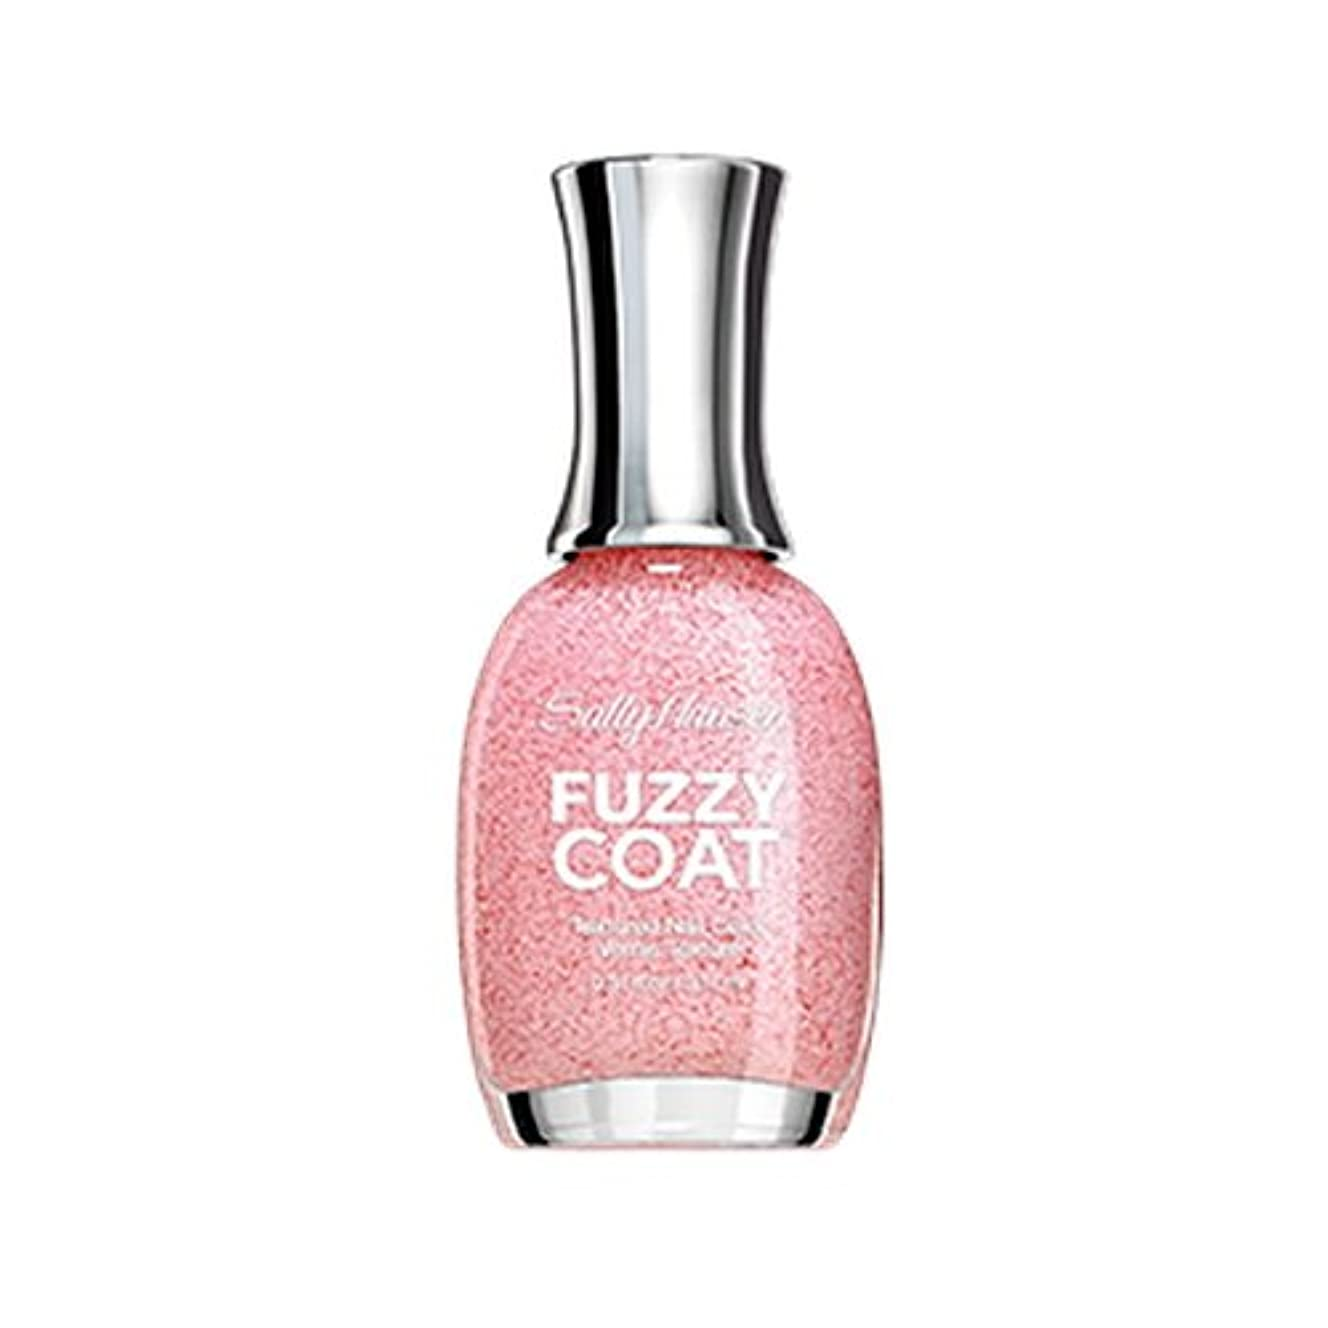 端末ポルトガル語絶えずSALLY HANSEN Fuzzy Coat Special Effect Textured Nail Color - Wool Lite (並行輸入品)